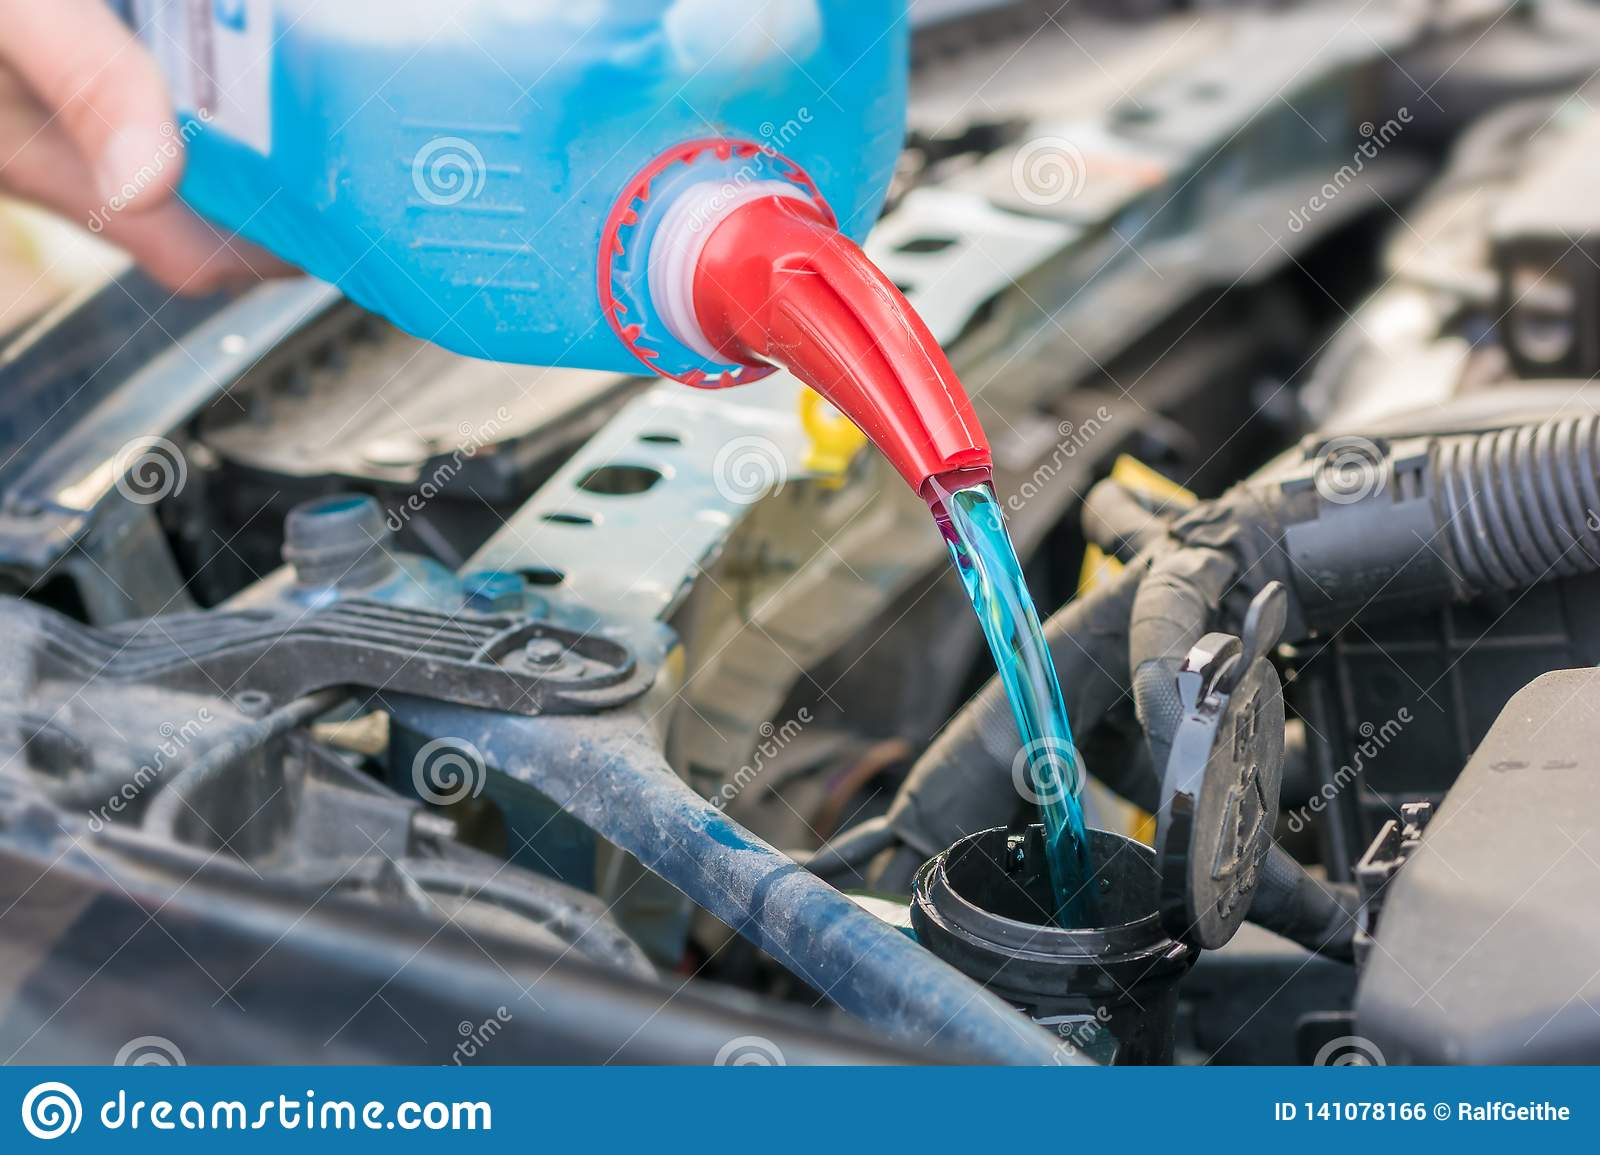 Filling the water tank with antifreeze in the engine compartment of a car